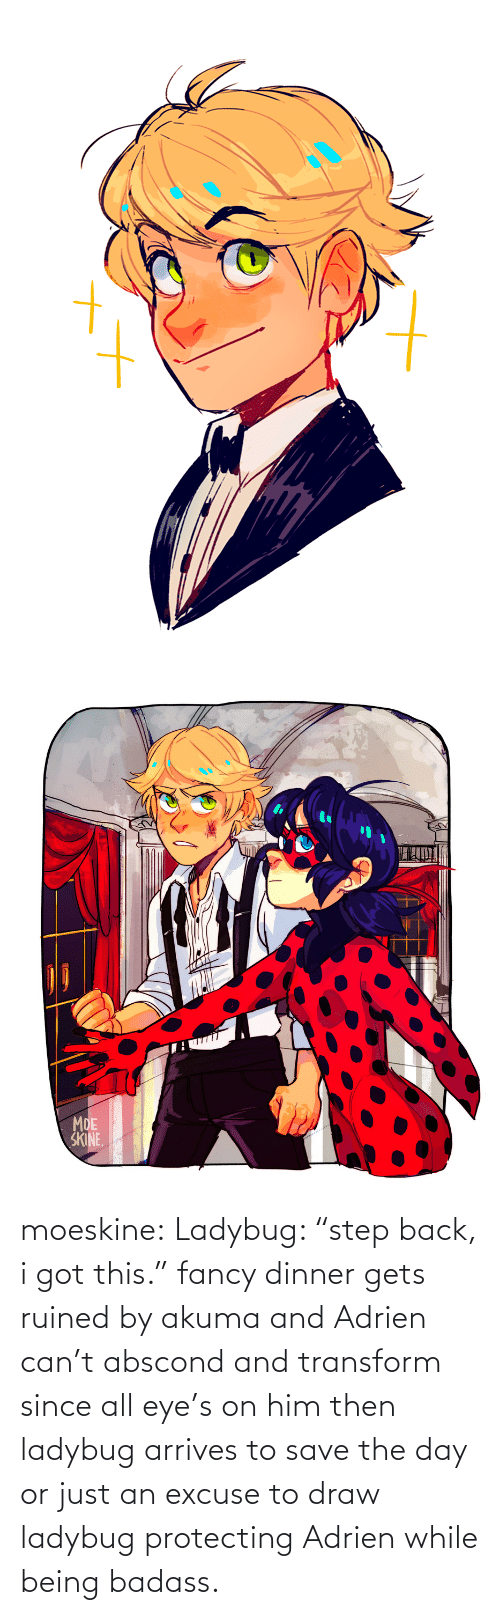 "ruined: moeskine:  Ladybug: ""step back, i got this."" fancy dinner gets ruined by akuma and Adrien can't abscond and transform since all eye's on him then ladybug arrives to save the day or just an excuse to draw ladybug protecting Adrien while being badass."